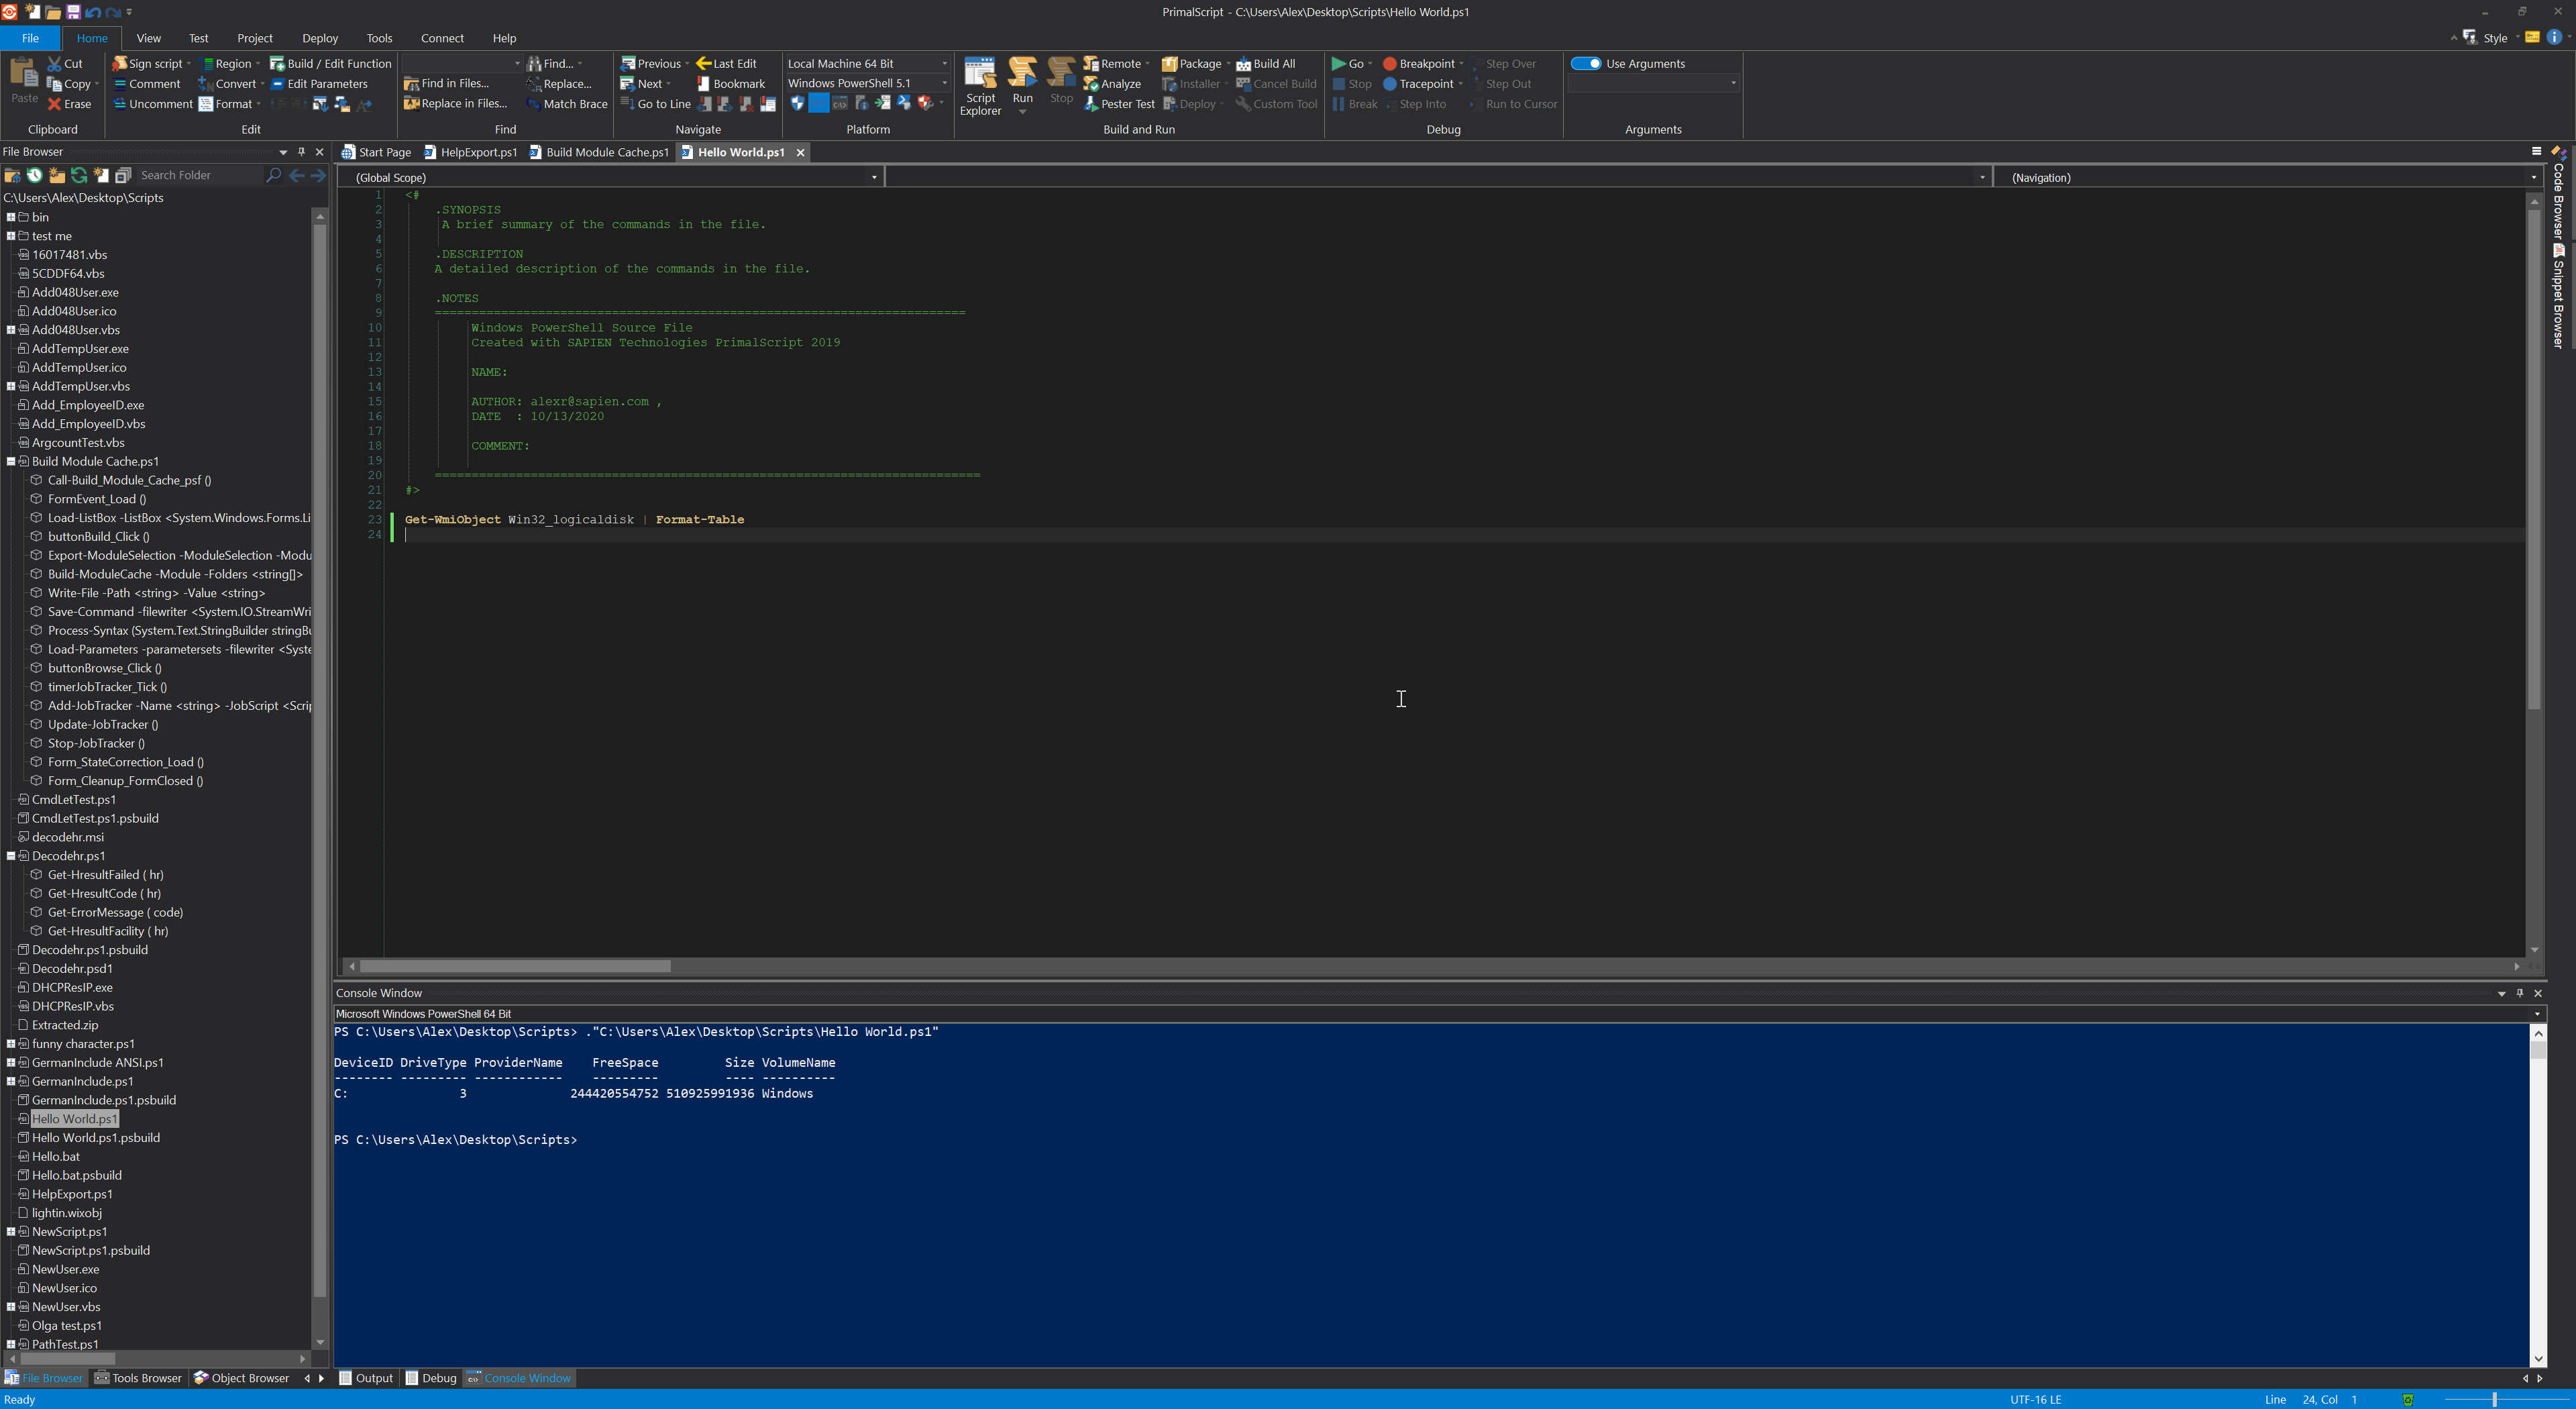 PrimalScript | Scripting and Debugging for PowerShell, VBScript